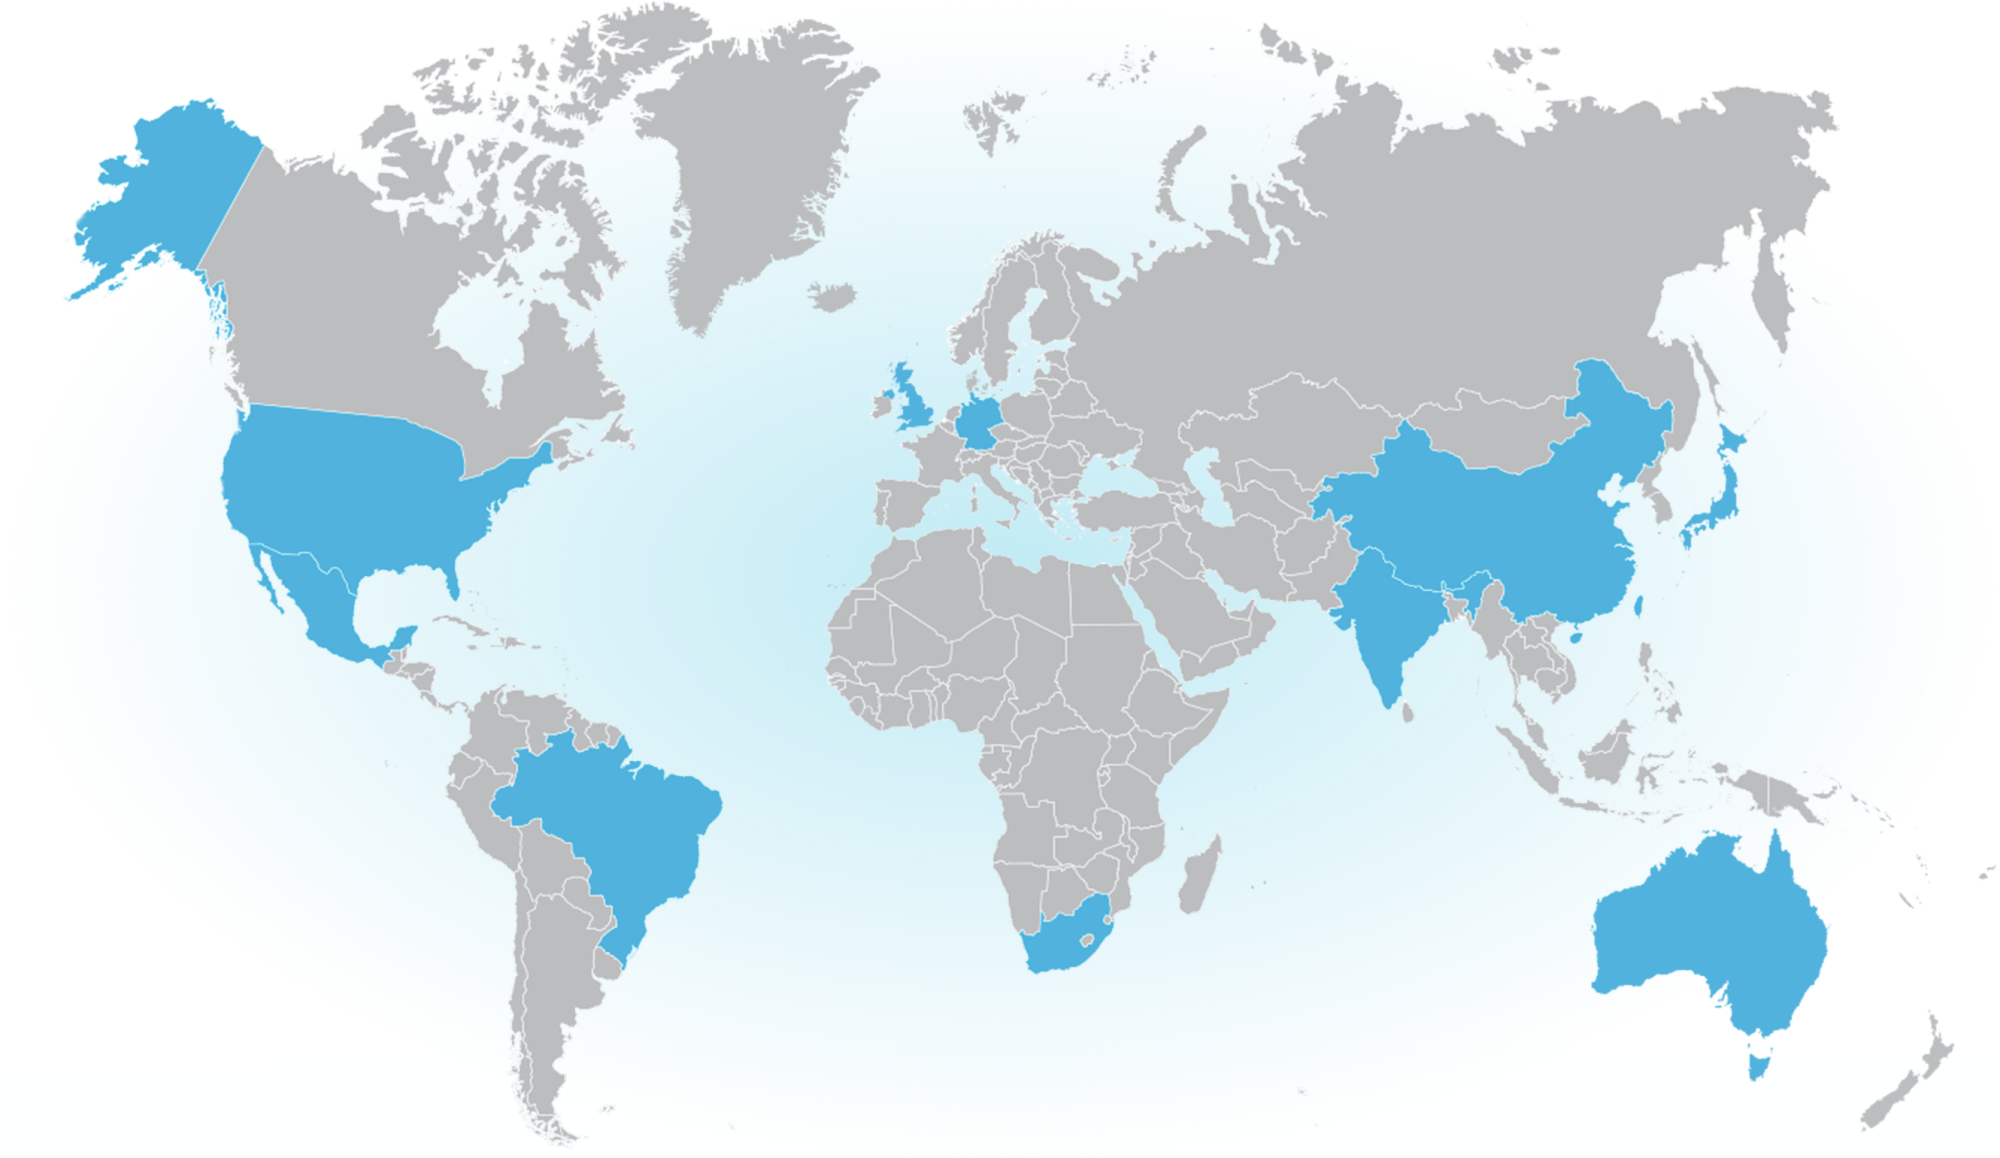 World map in gray highlighting select countries in blue: USA, Mexico, Brazil, UK, Germany, South Africa, India, China, Taiwan, Japan, Australia